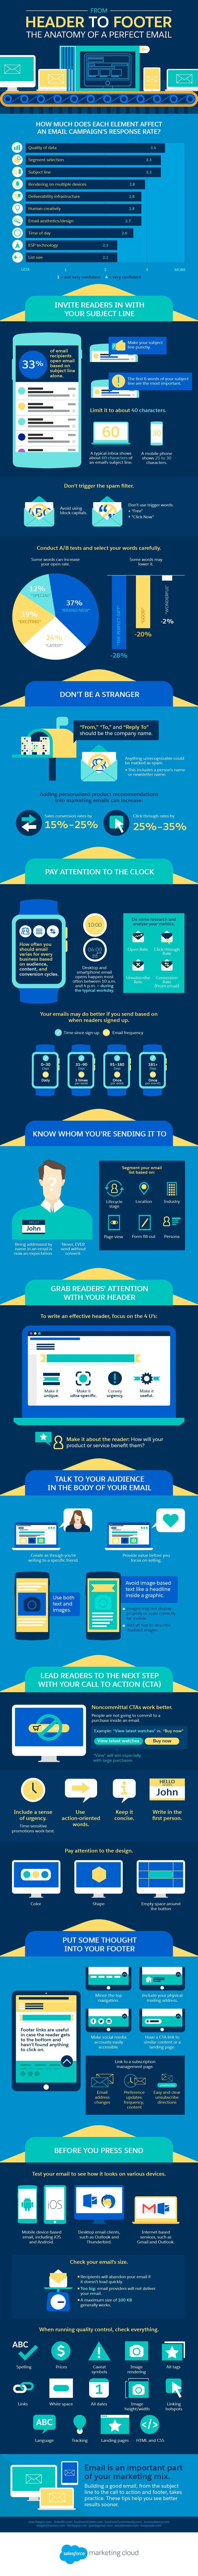 How to Create the Perfect Email Newsletter Campaign [Infographic]